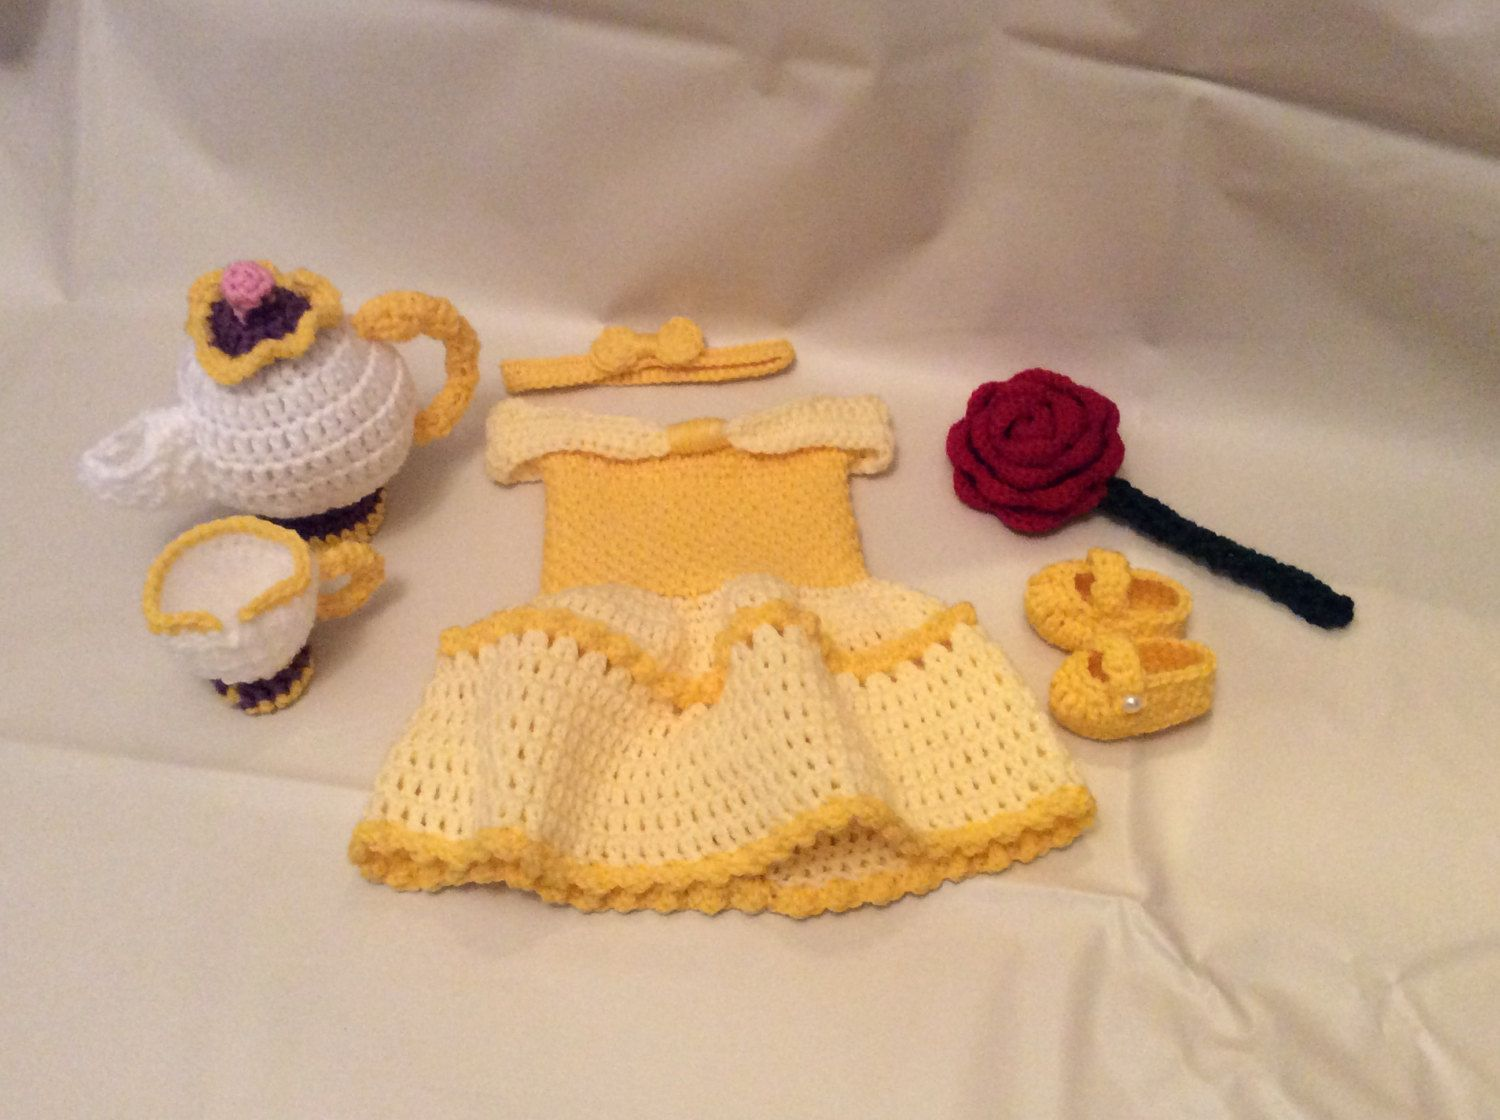 crochet belle newborn photography prop setbeauty and the beastinfant halloween costume - Halloween Photography Props